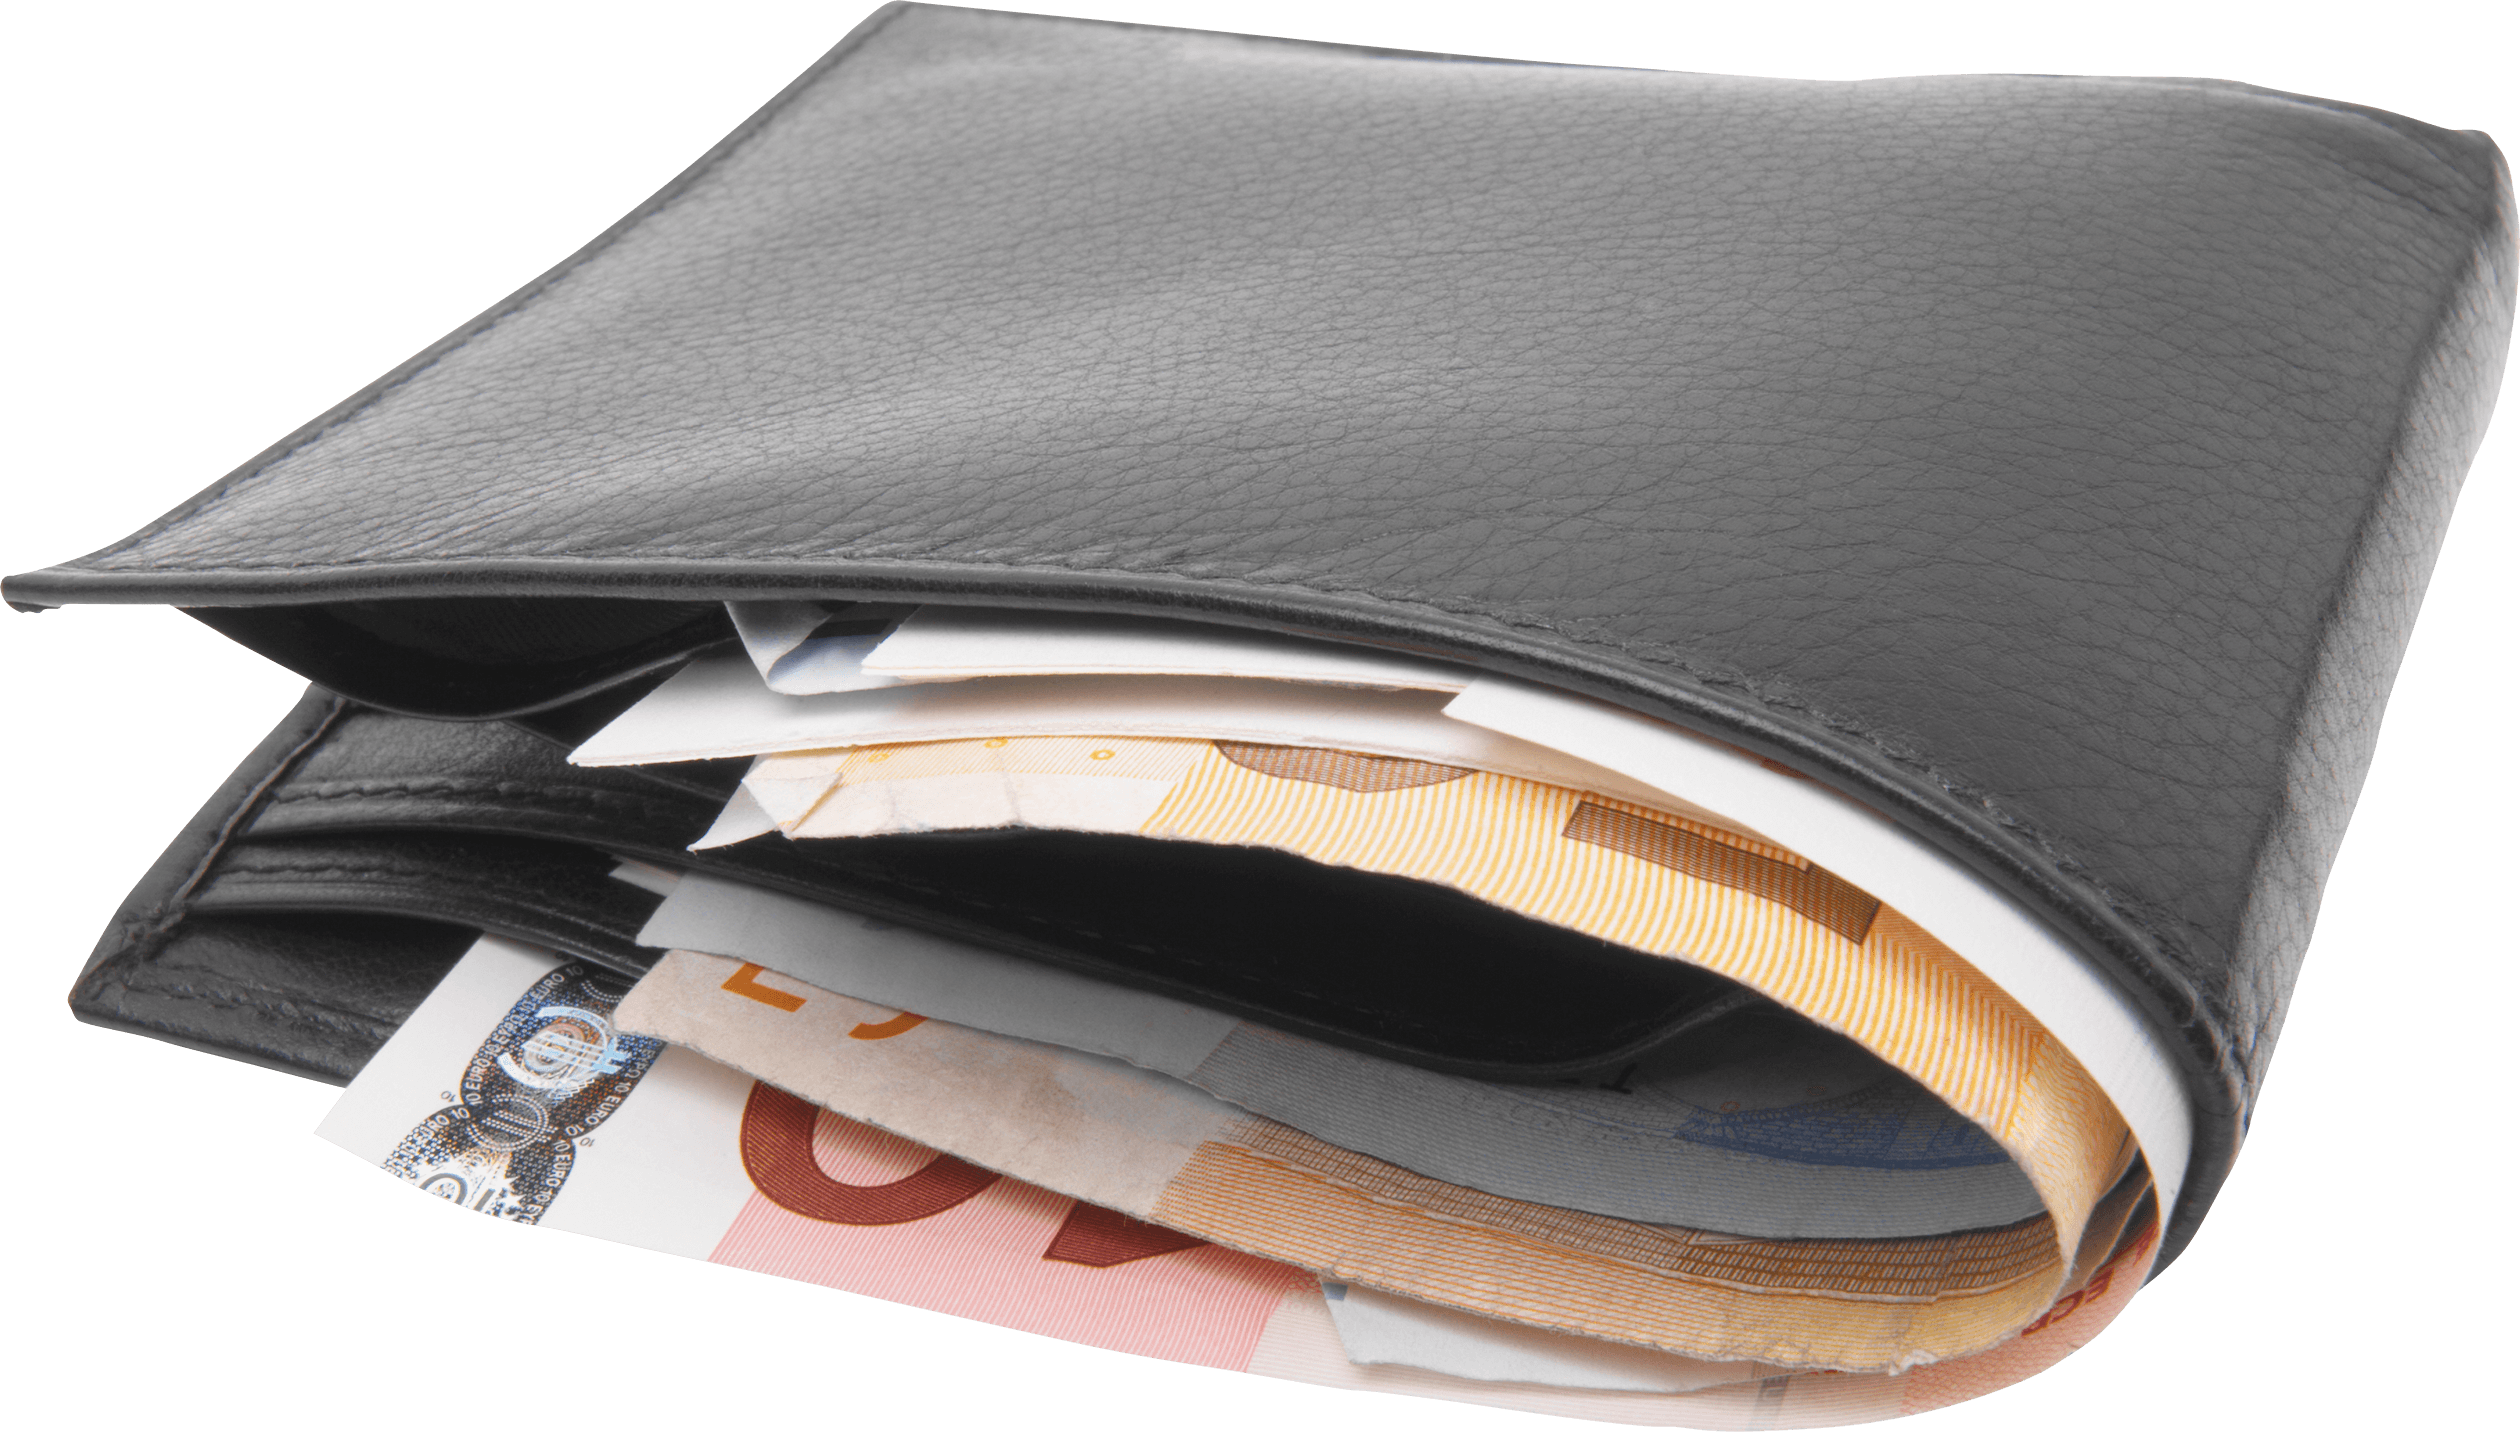 Purse Money Png Image PNG Image